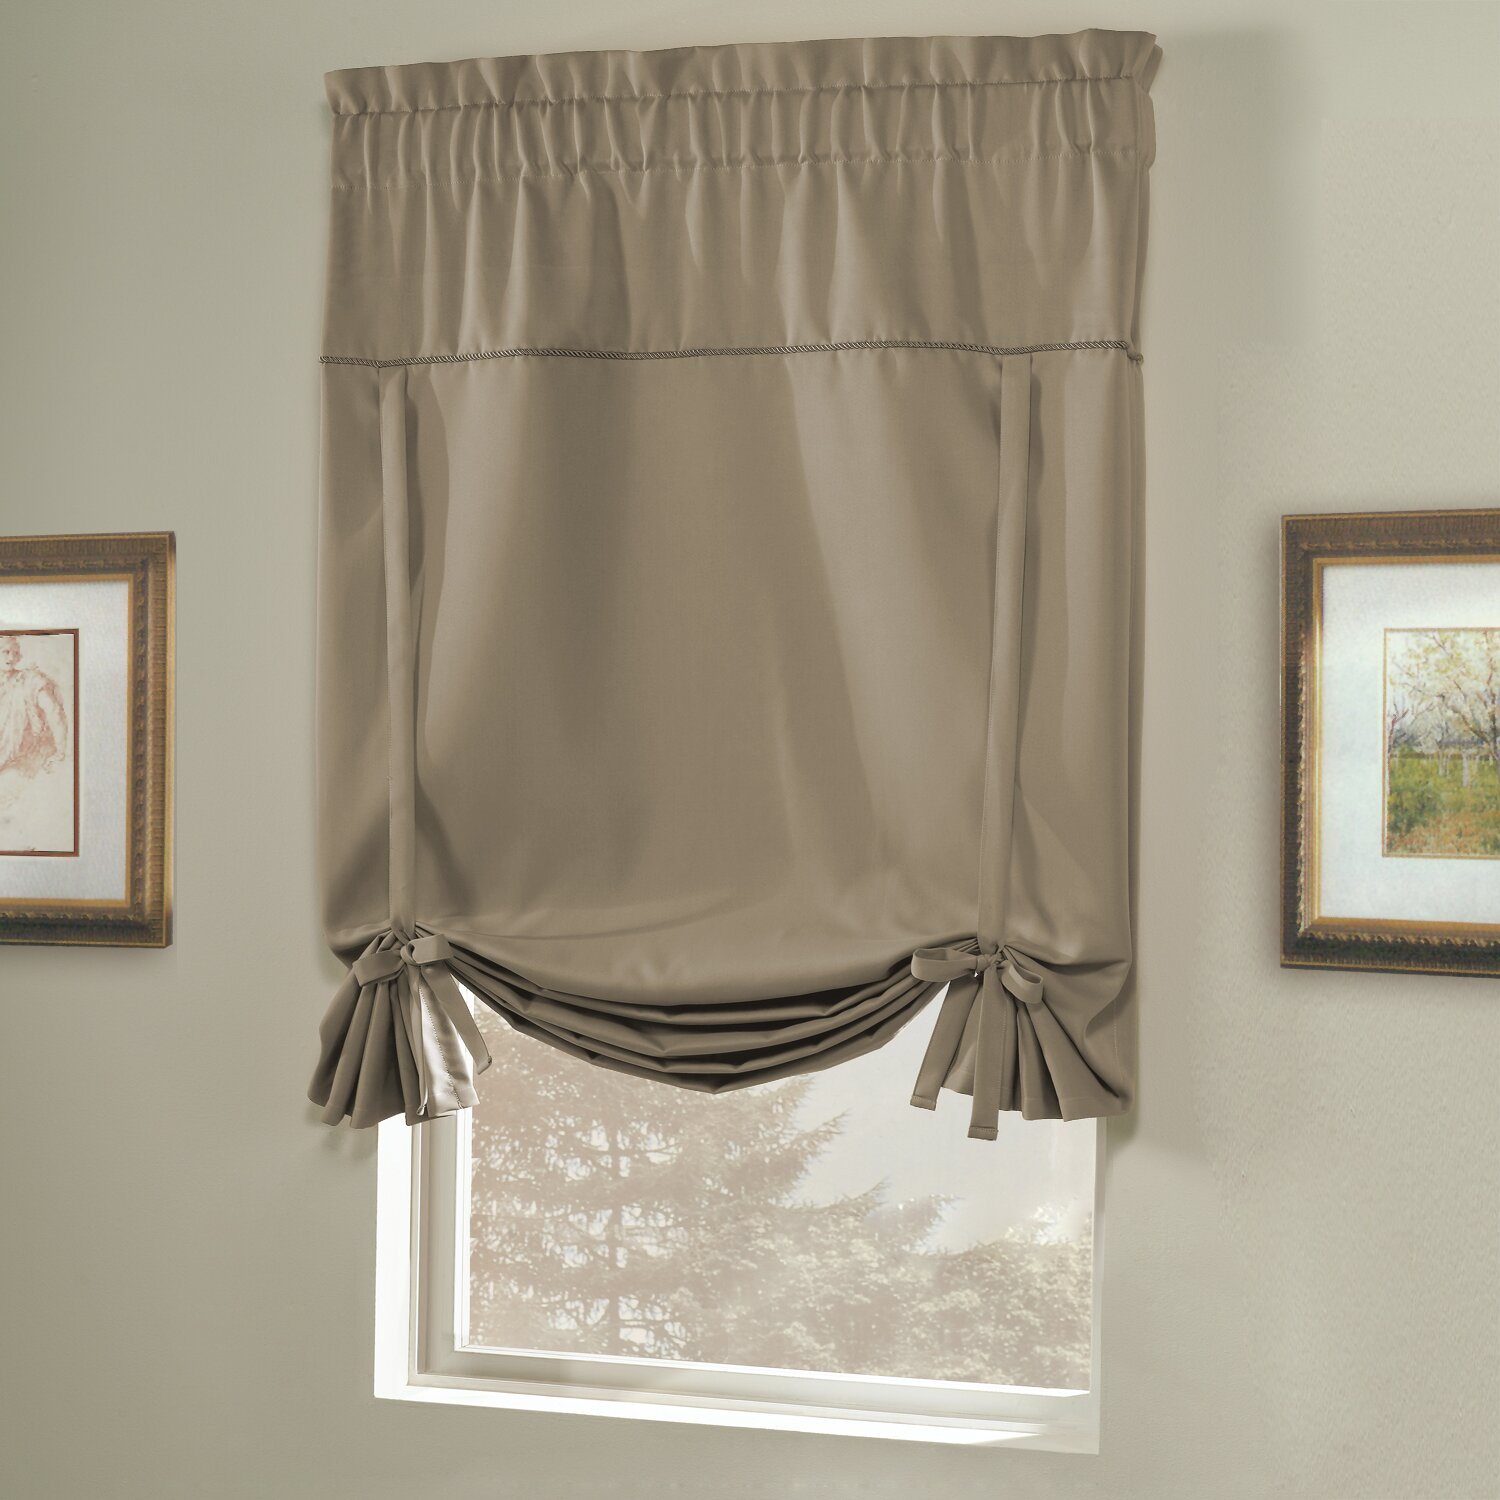 united curtain co blackstone tie up shade reviews. Black Bedroom Furniture Sets. Home Design Ideas